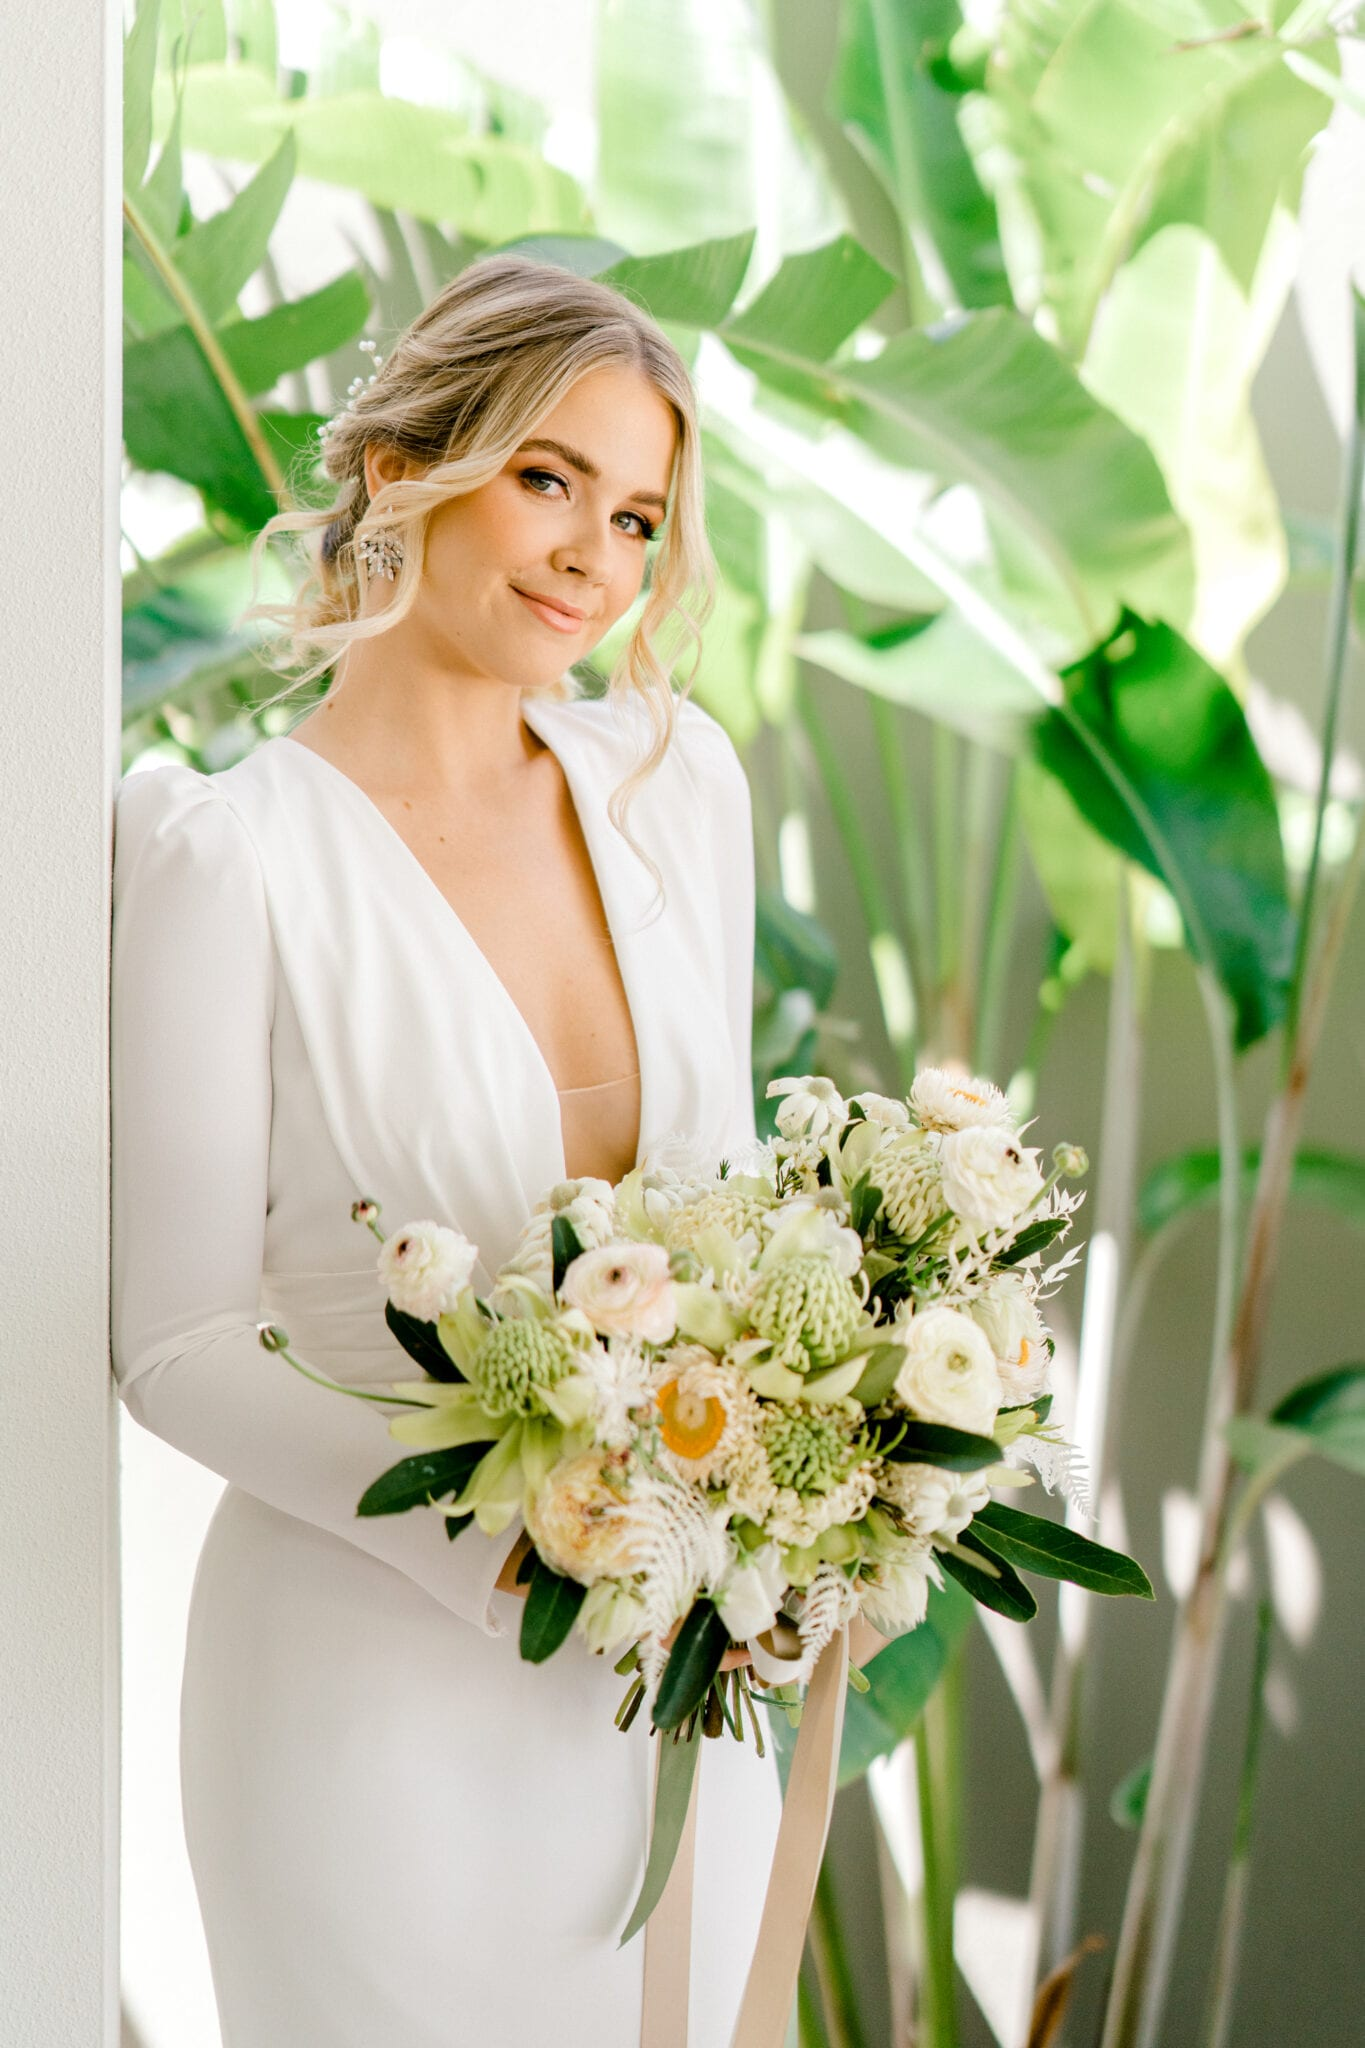 ADRIENNE-Pronovias-Modern-Crepe-Wedding-Gown-Sleeves-White-Lily-Couture-Brisbane (9)